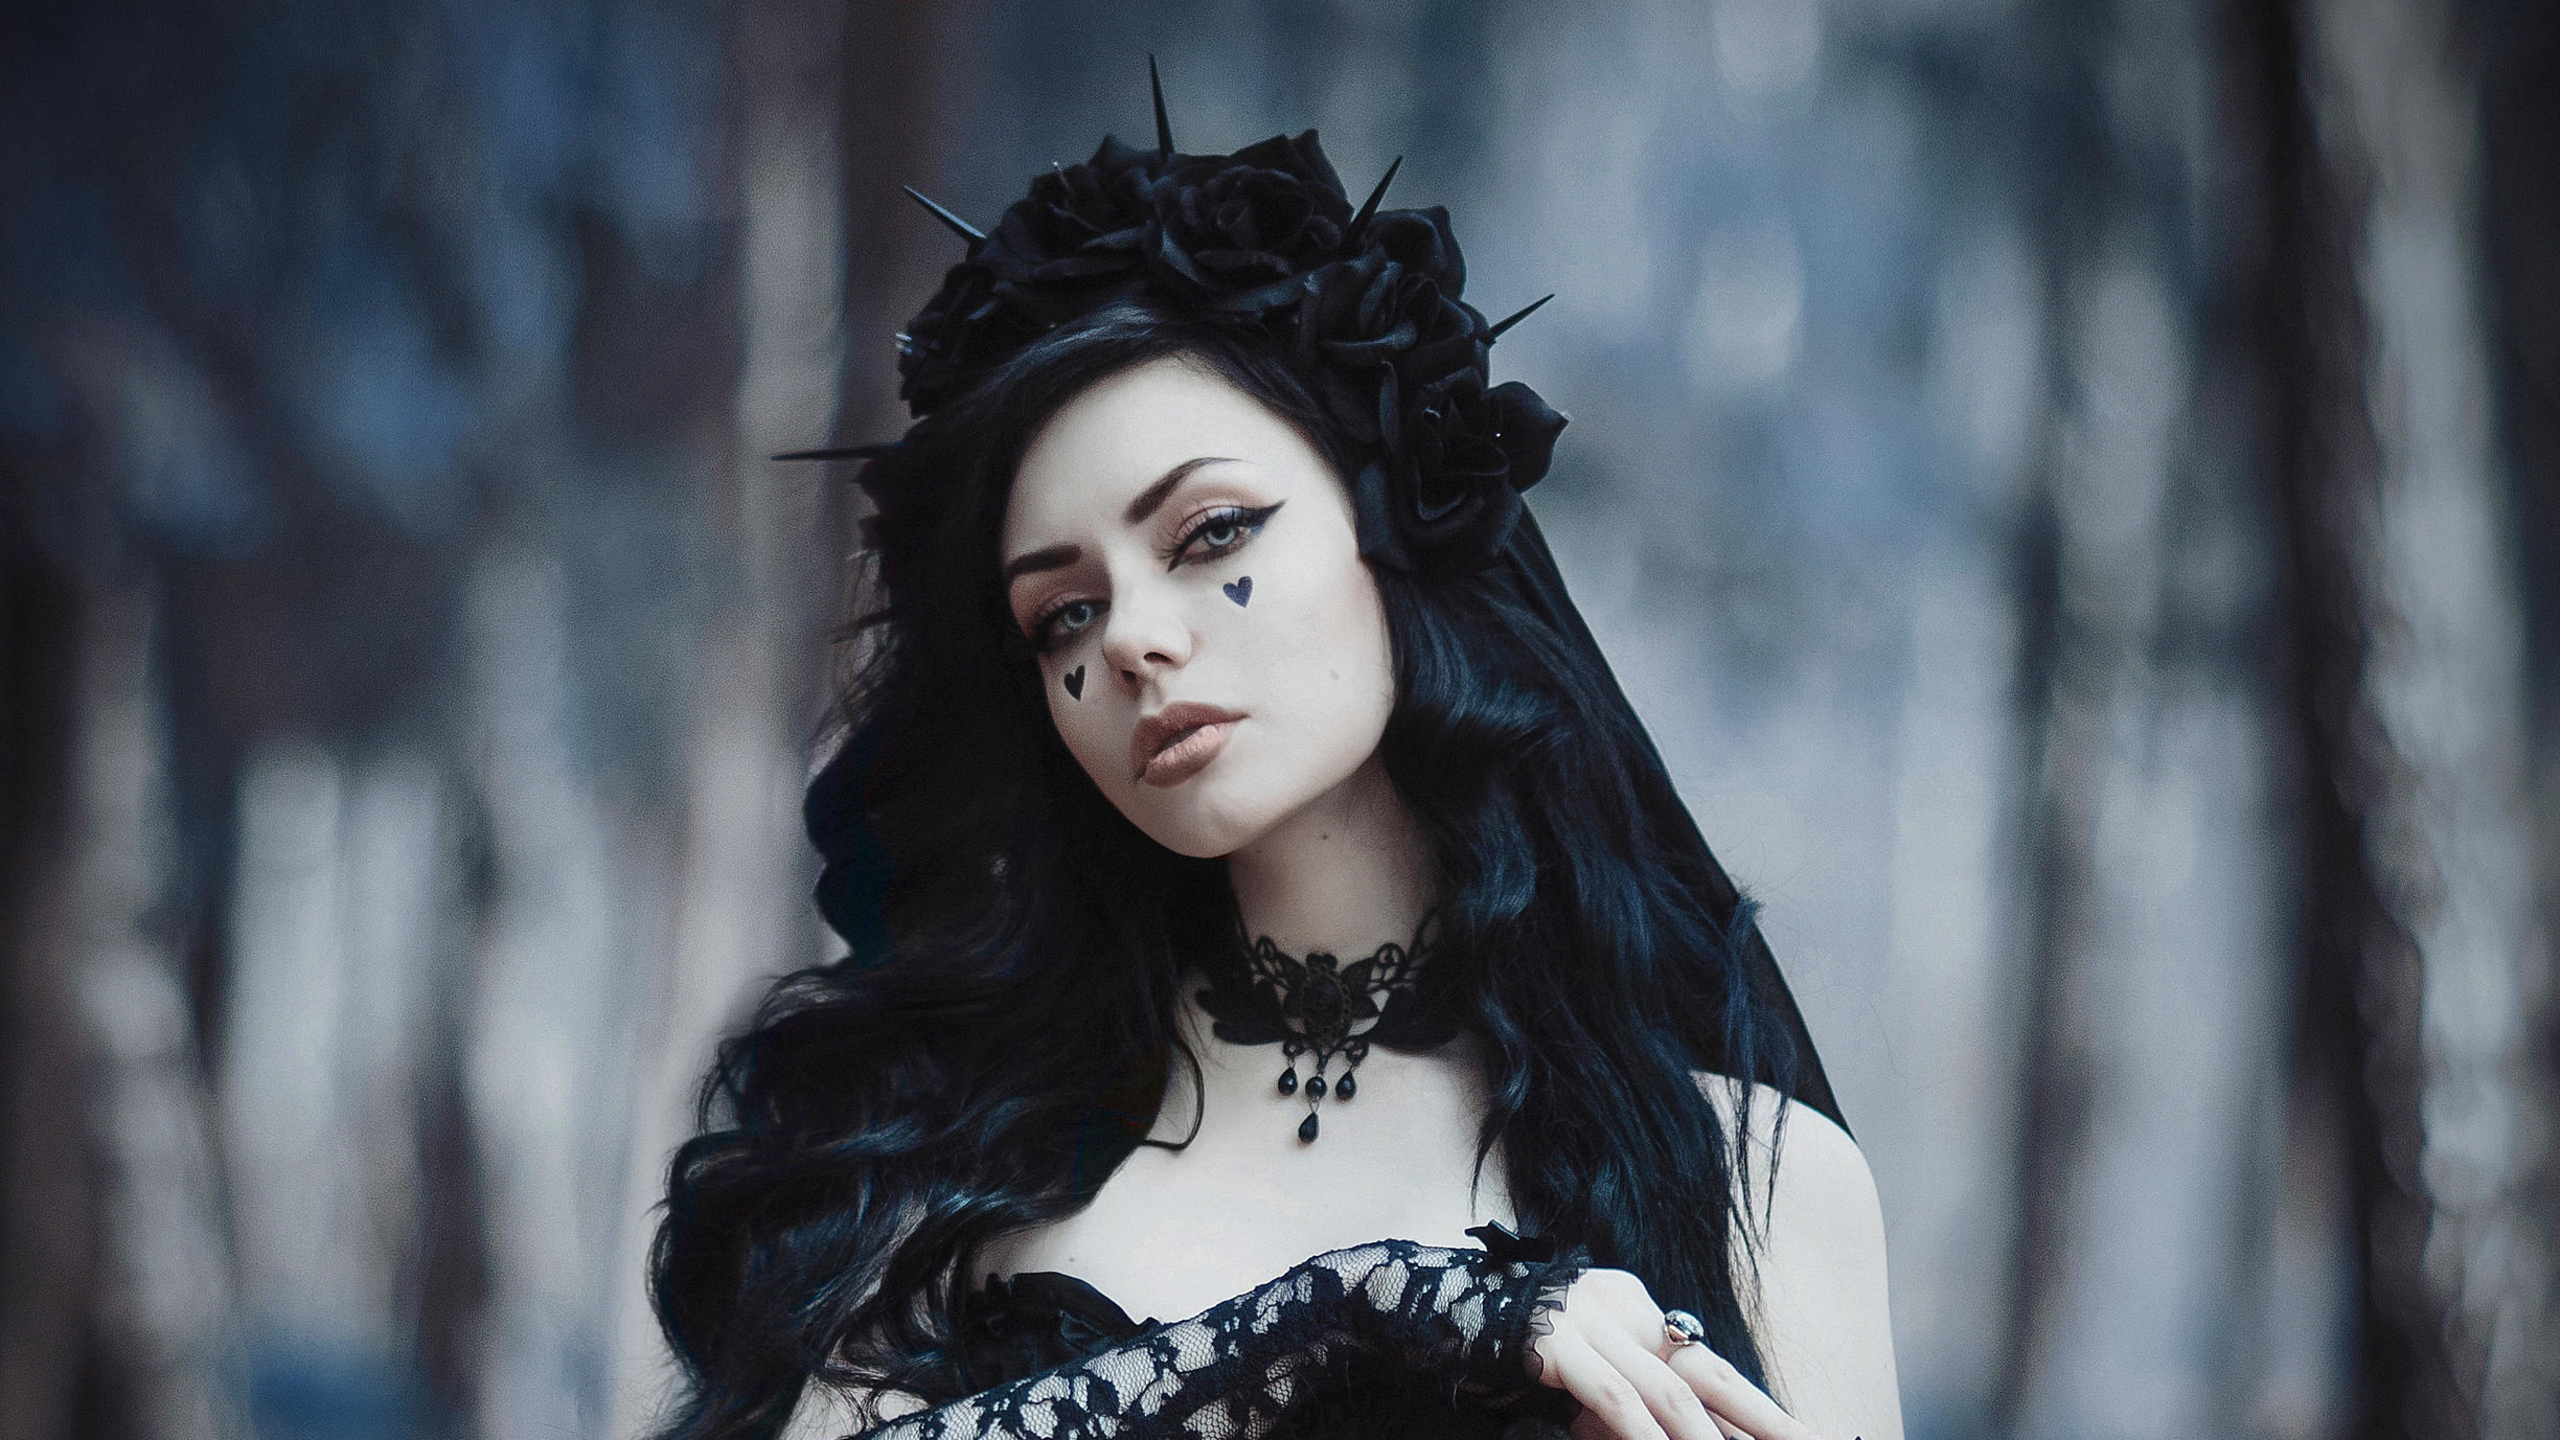 2560x1440 Gothic Bride In Black Dress 1440p Resolution Hd 4k Wallpapers Images Backgrounds Photos And Pictures